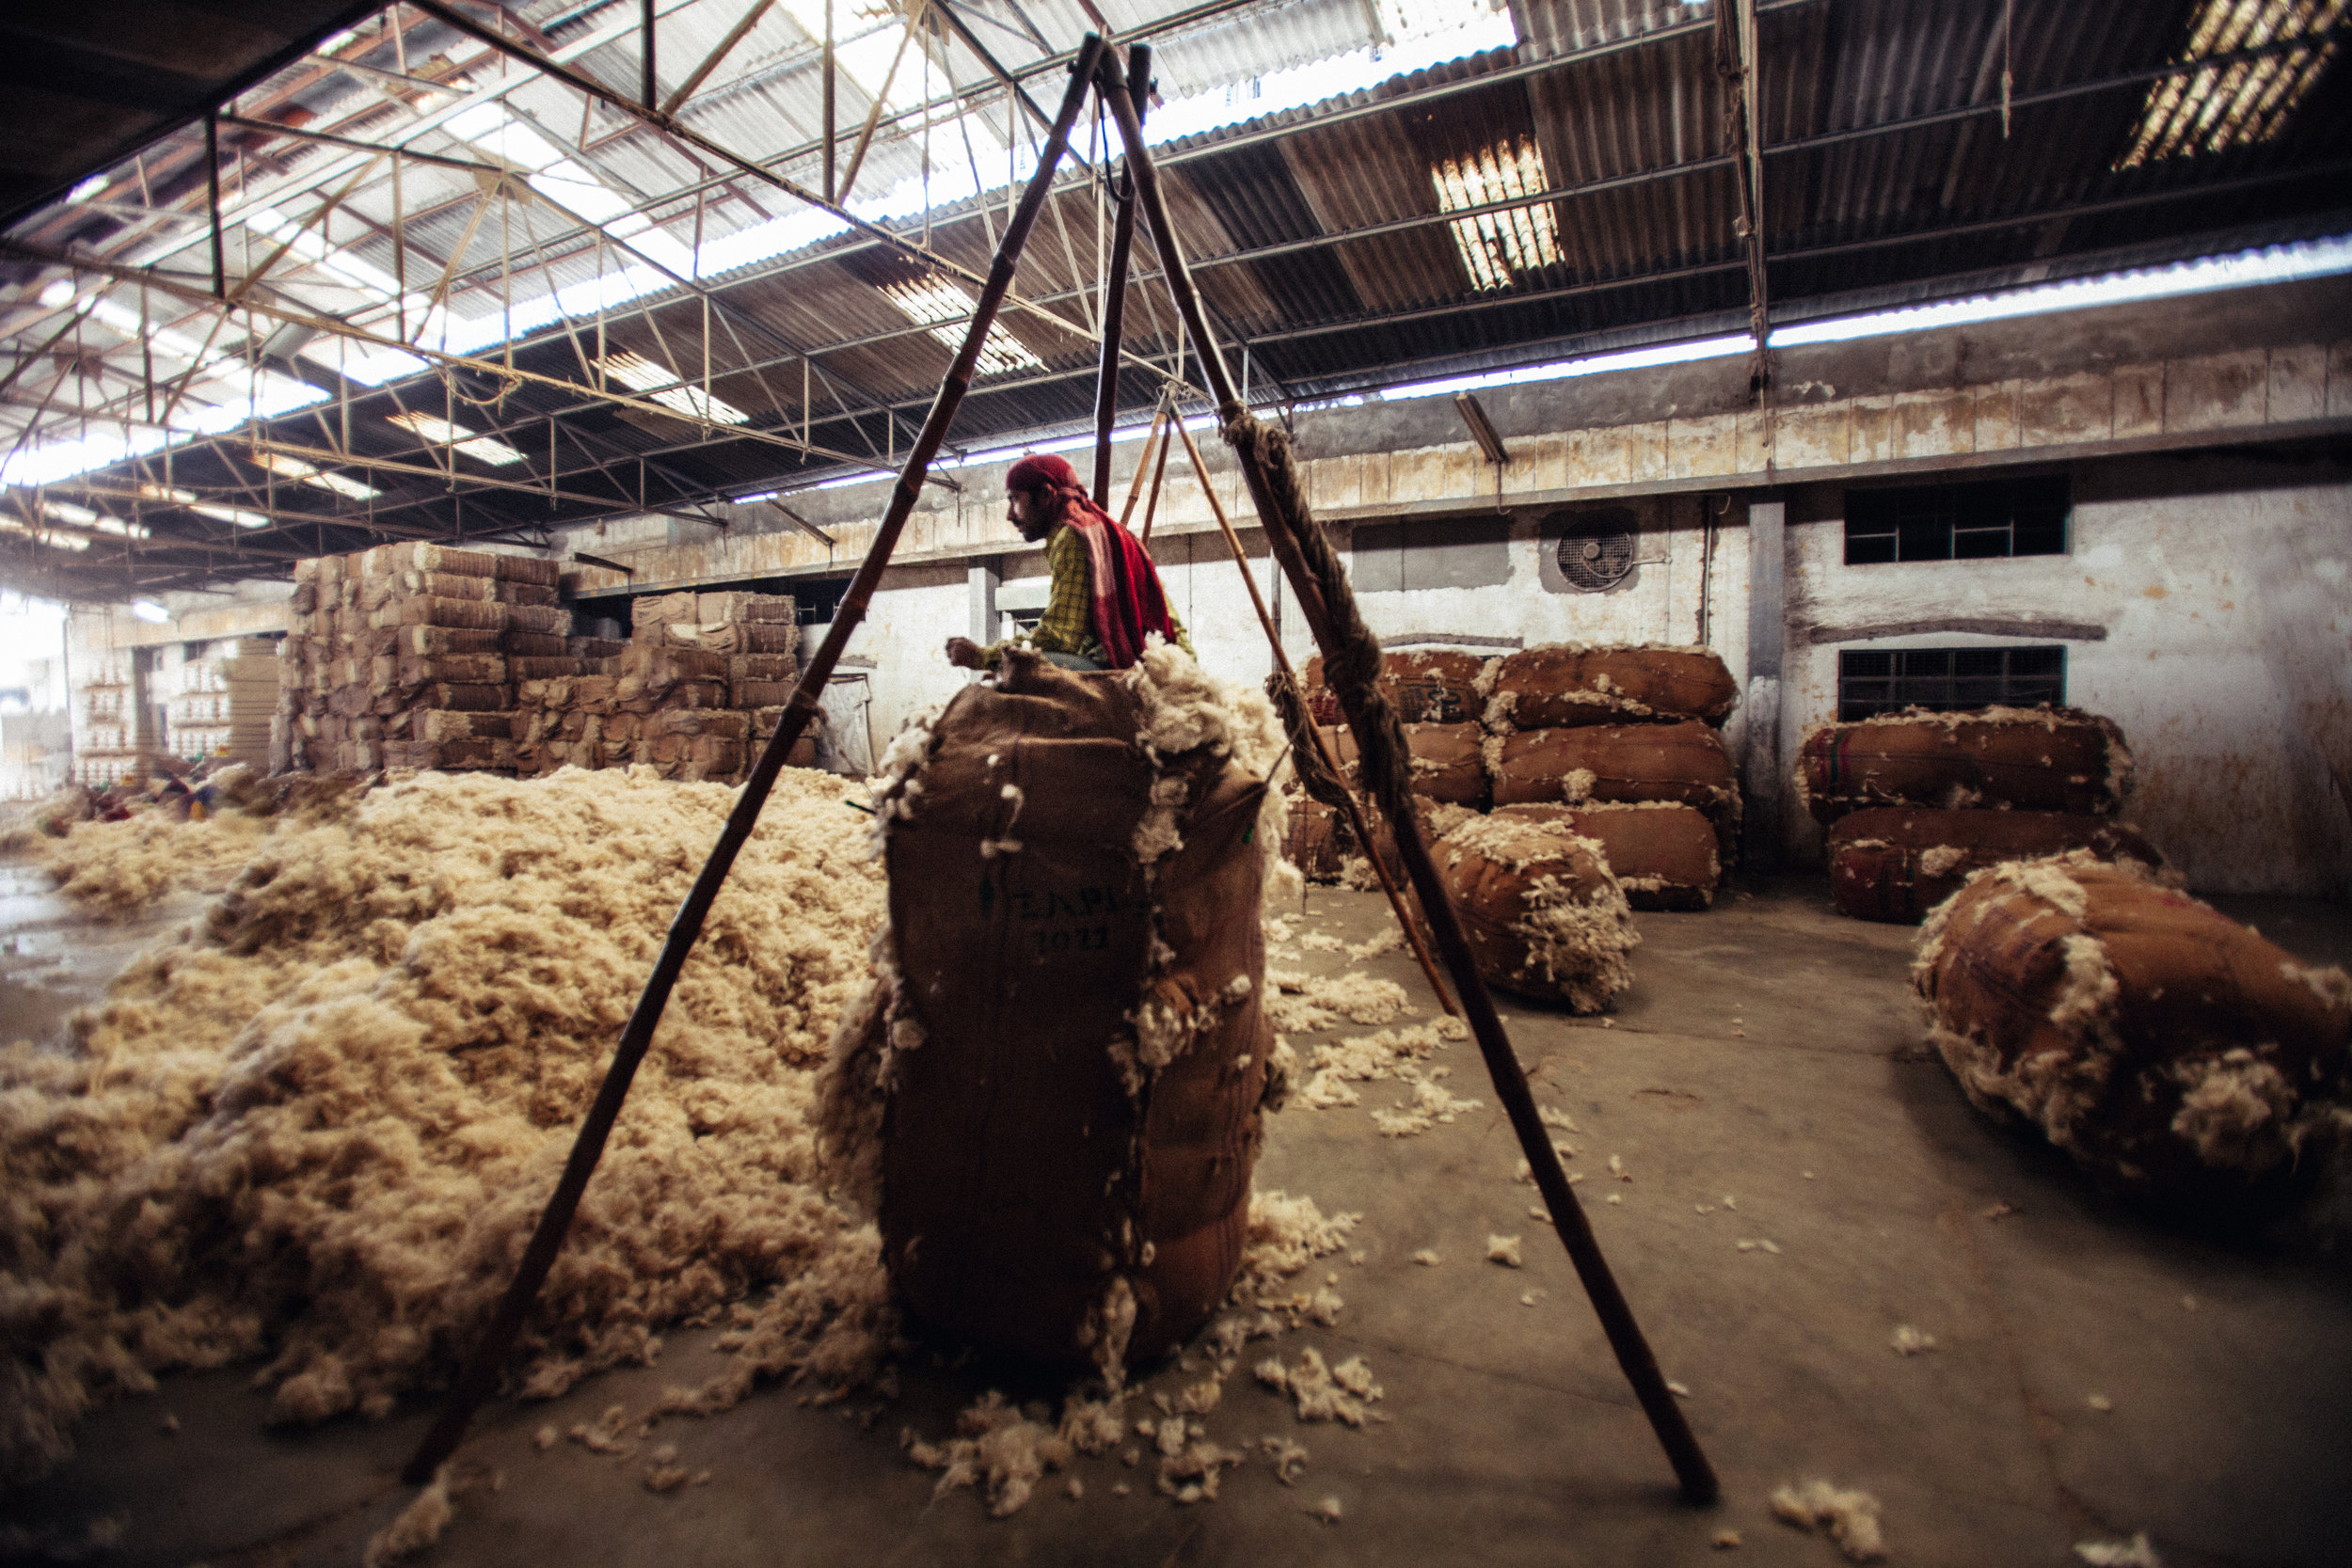 WOOL FACTORY, PANIPAT, INDIA